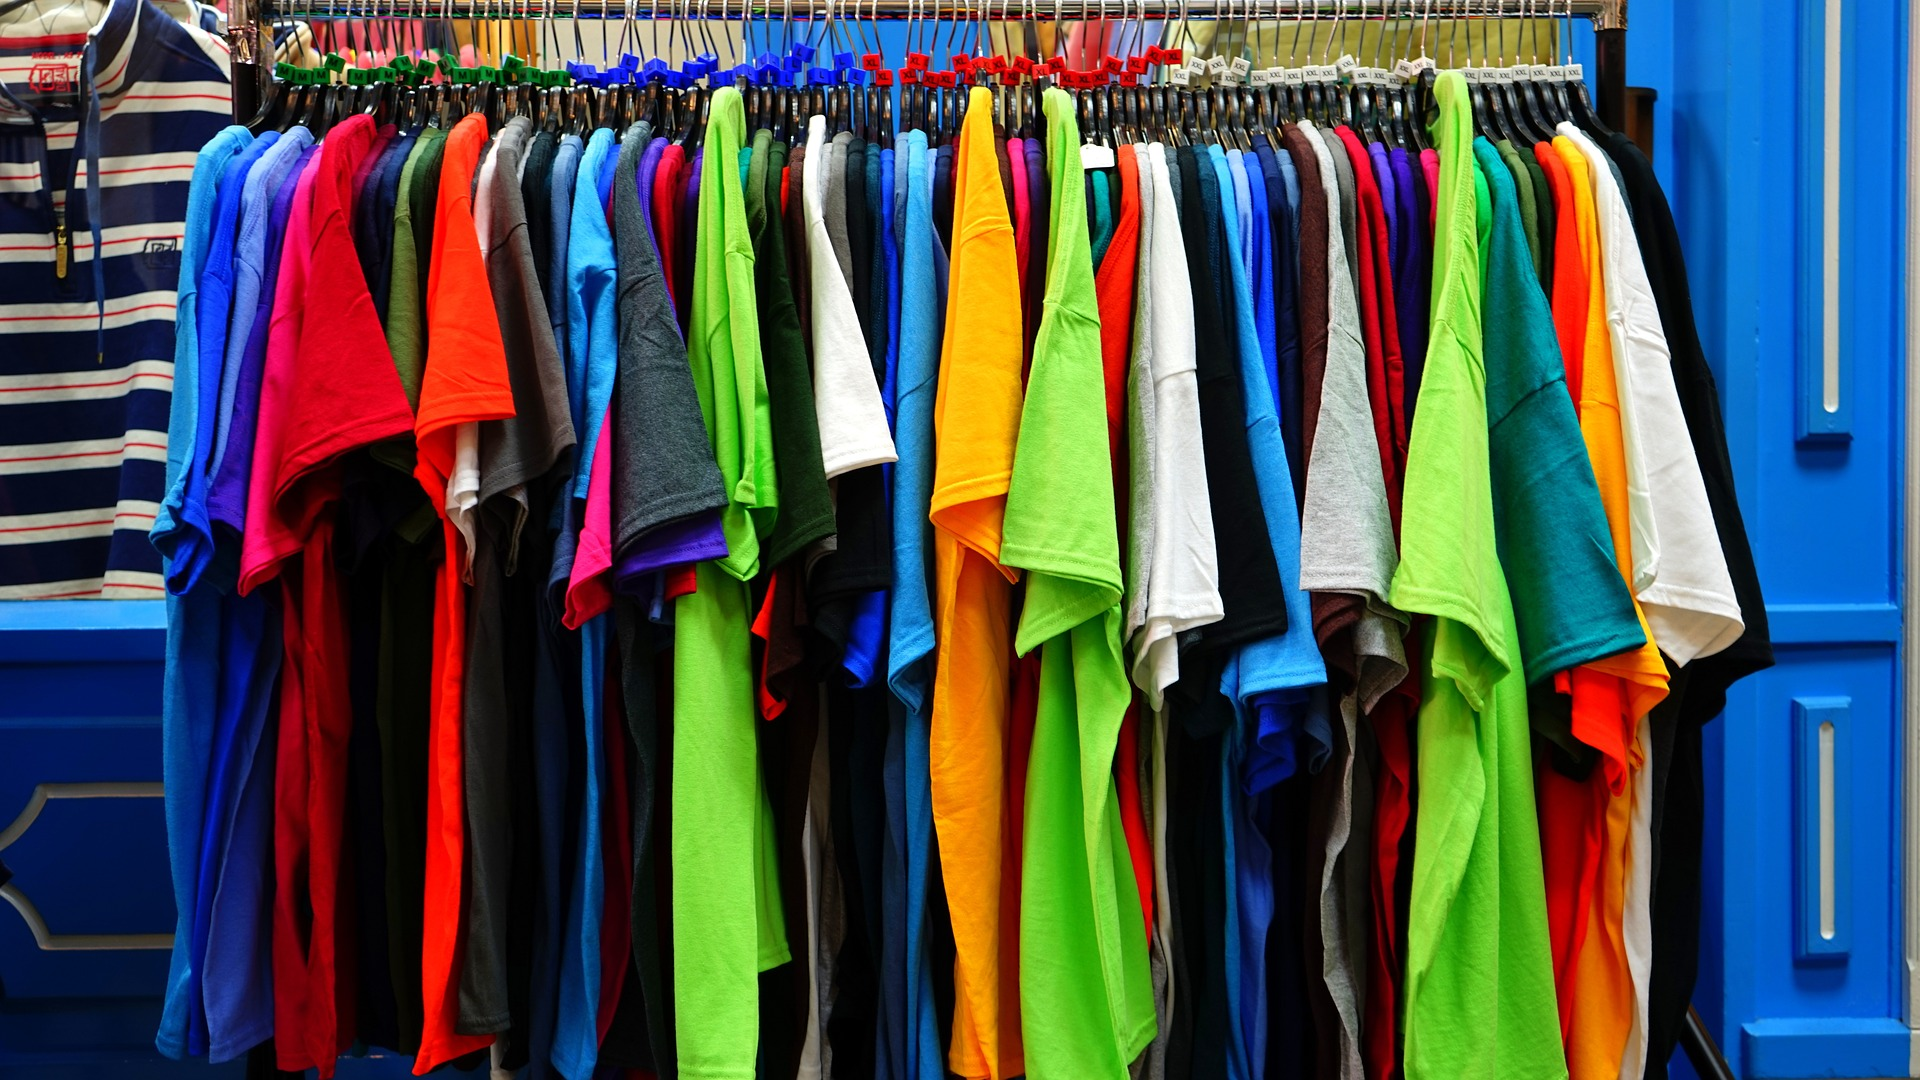 picture credit: Mike Birdy, pixabay.com Carcinogenic, mutagenic, and reprotoxic (CMR) substances will be banned from textiles in future.